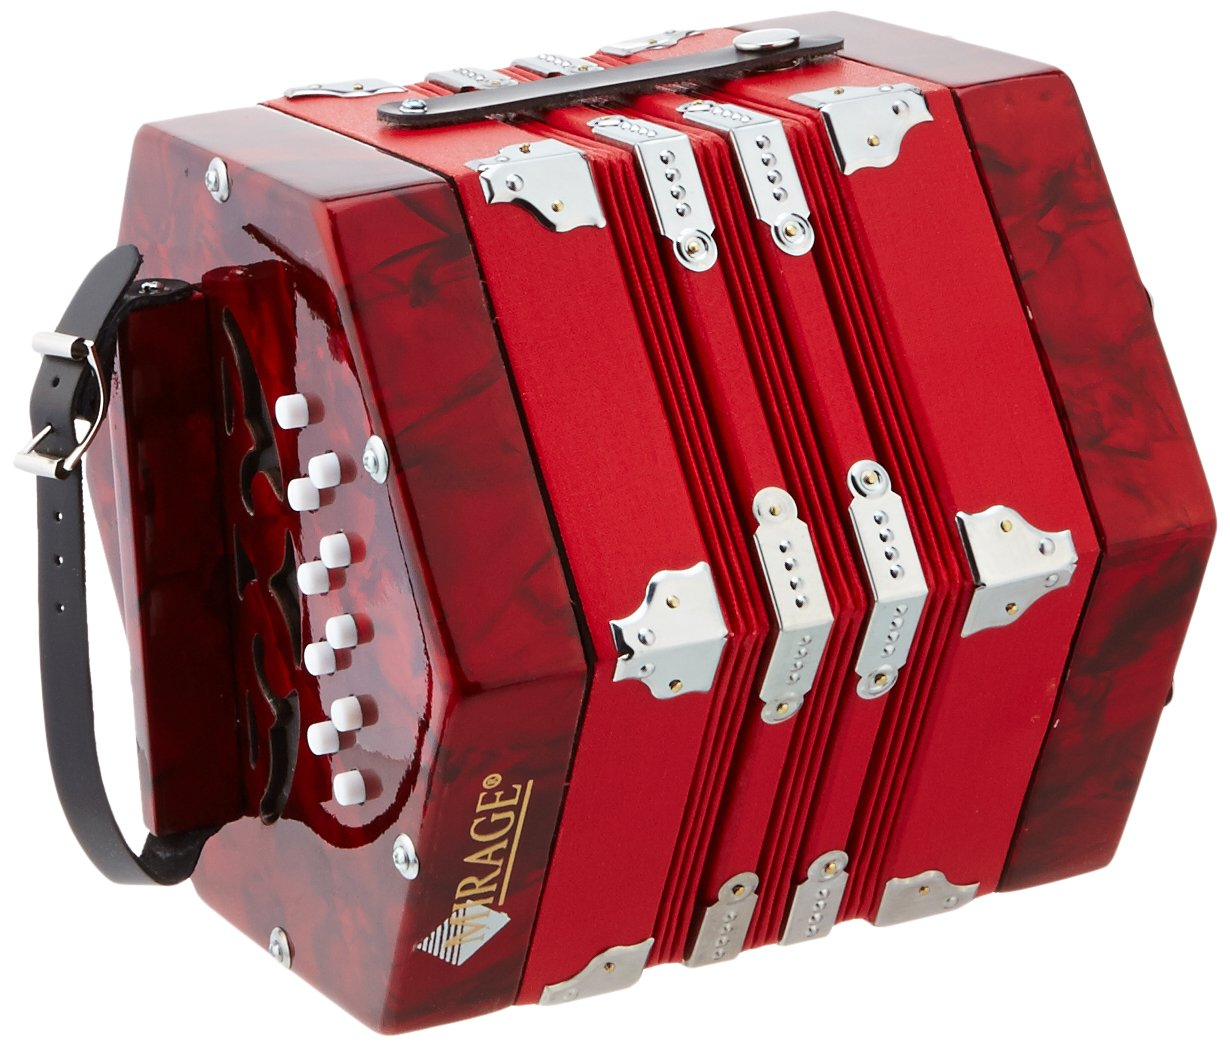 Mirage C7001 20-Button 40-Reed Concertina Accordion by Mirage